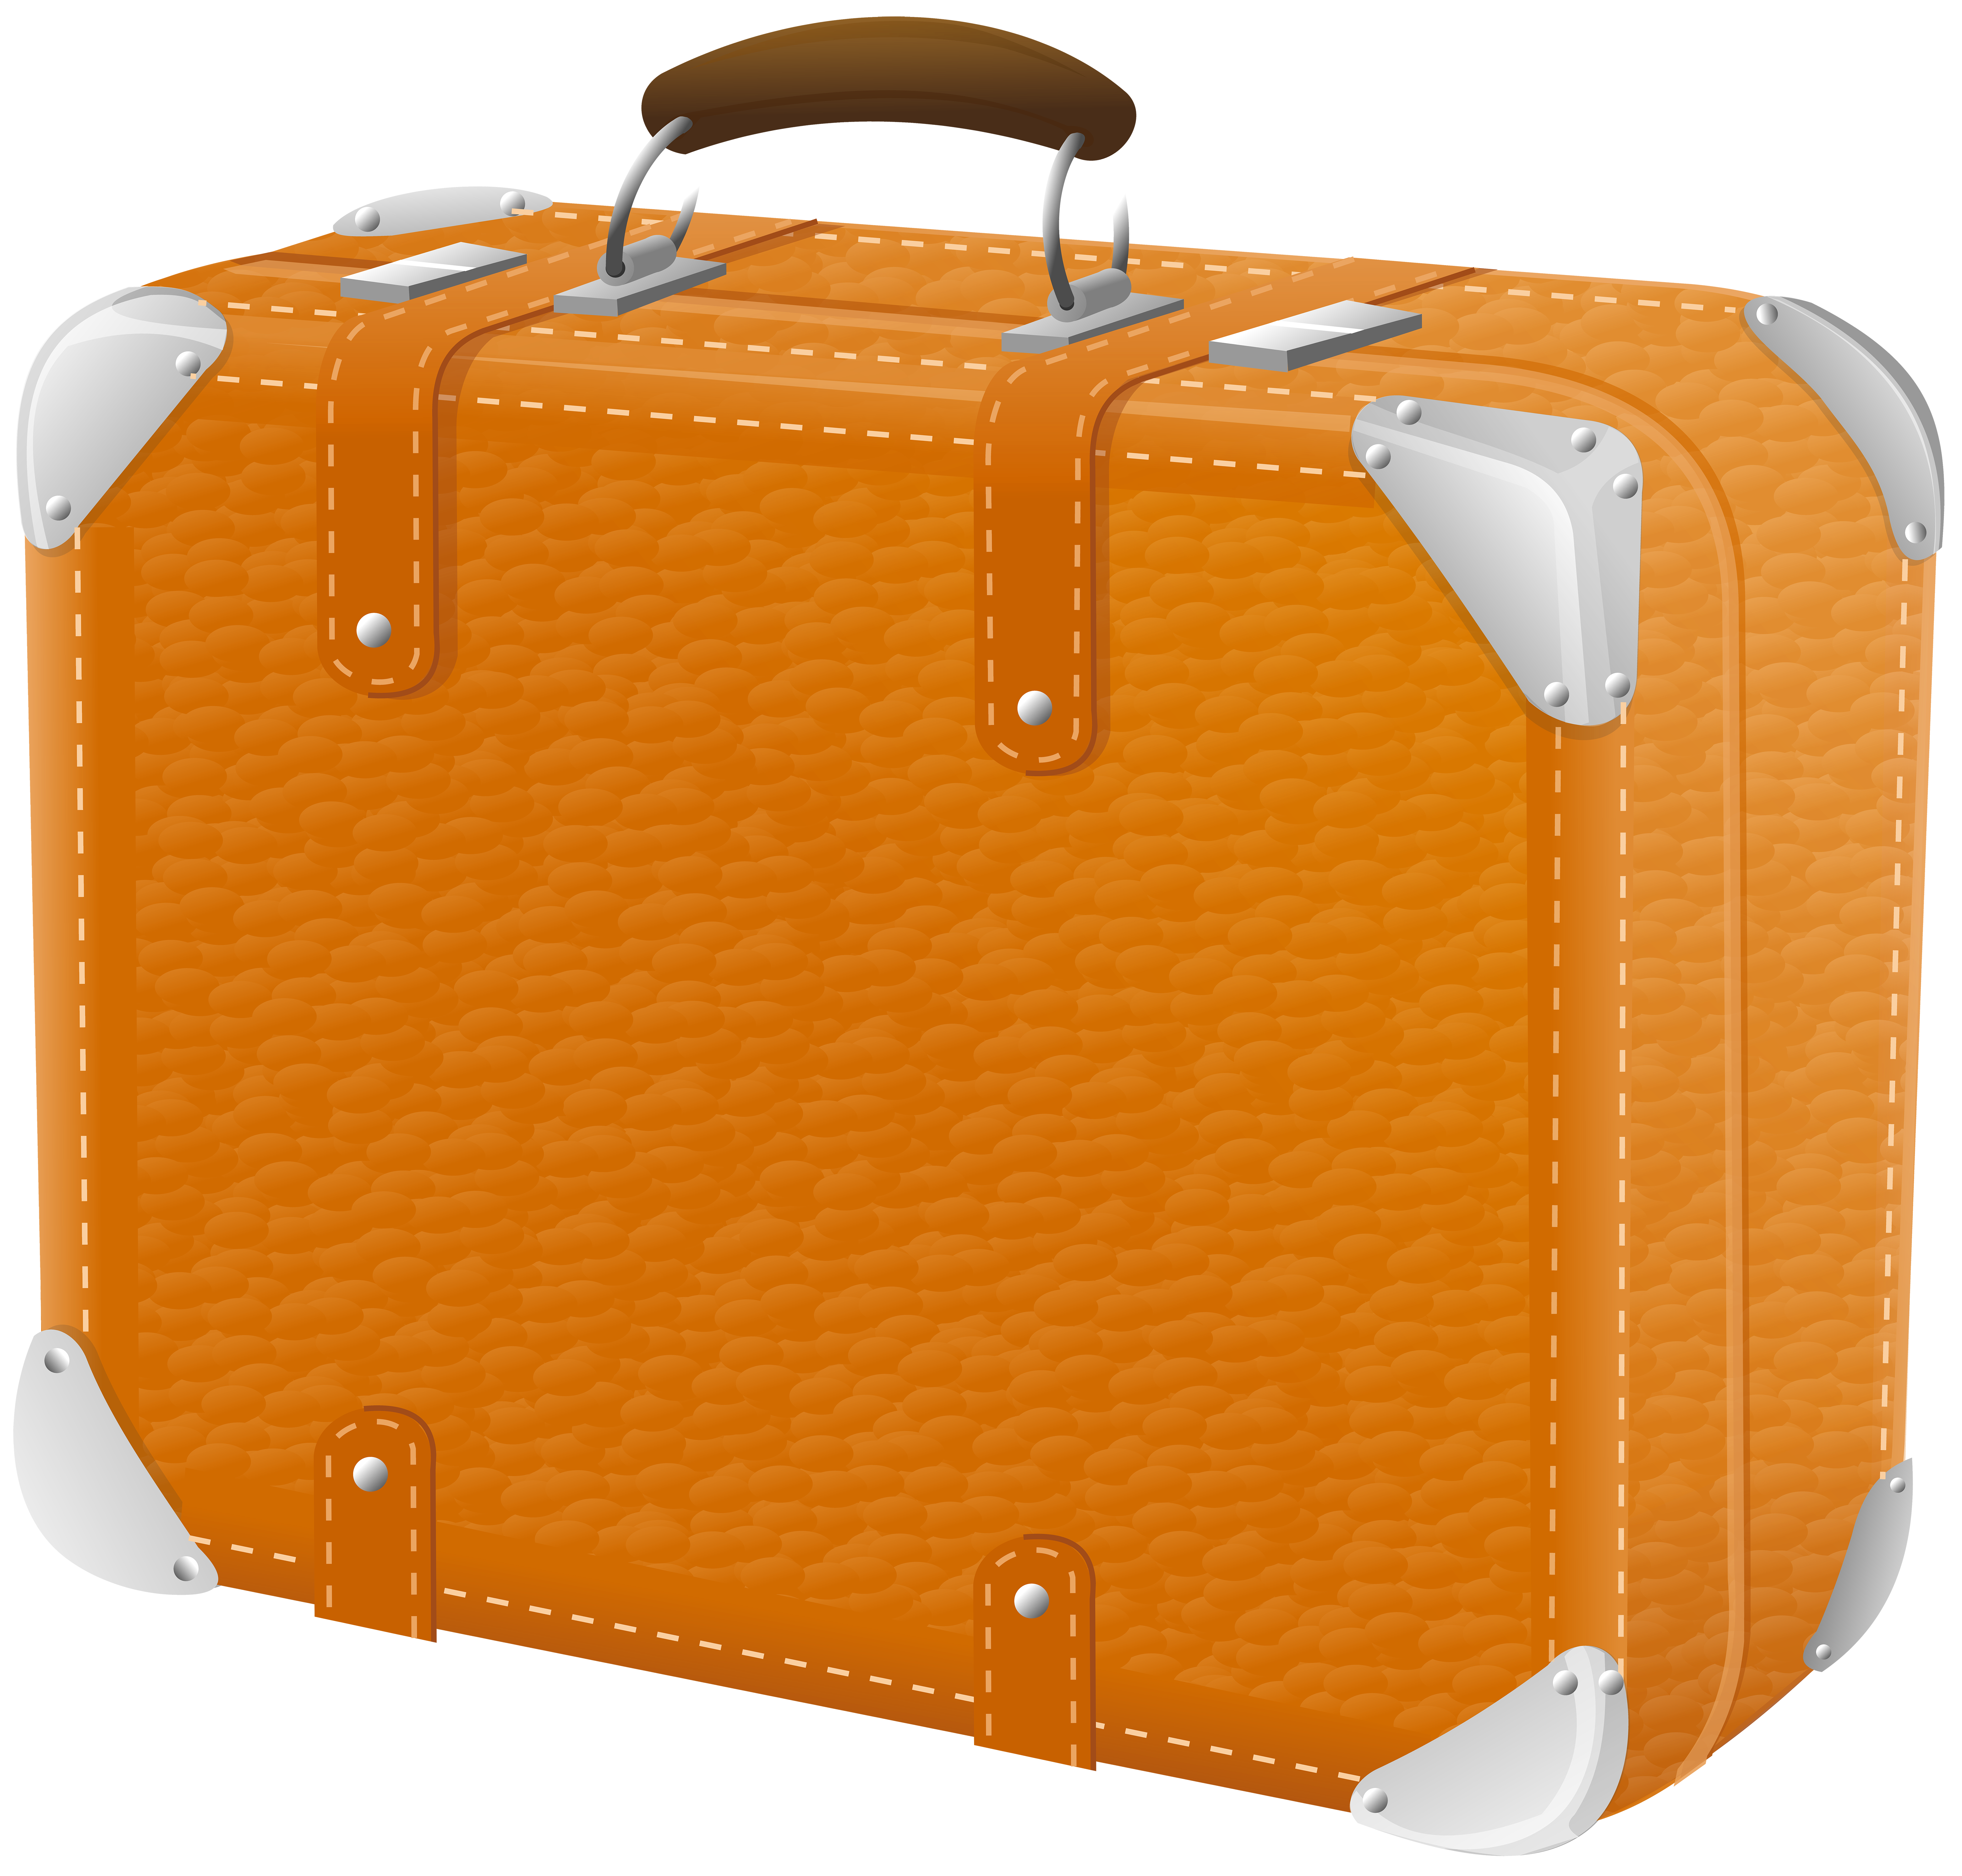 Suitcase transparent png image. Luggage clipart border